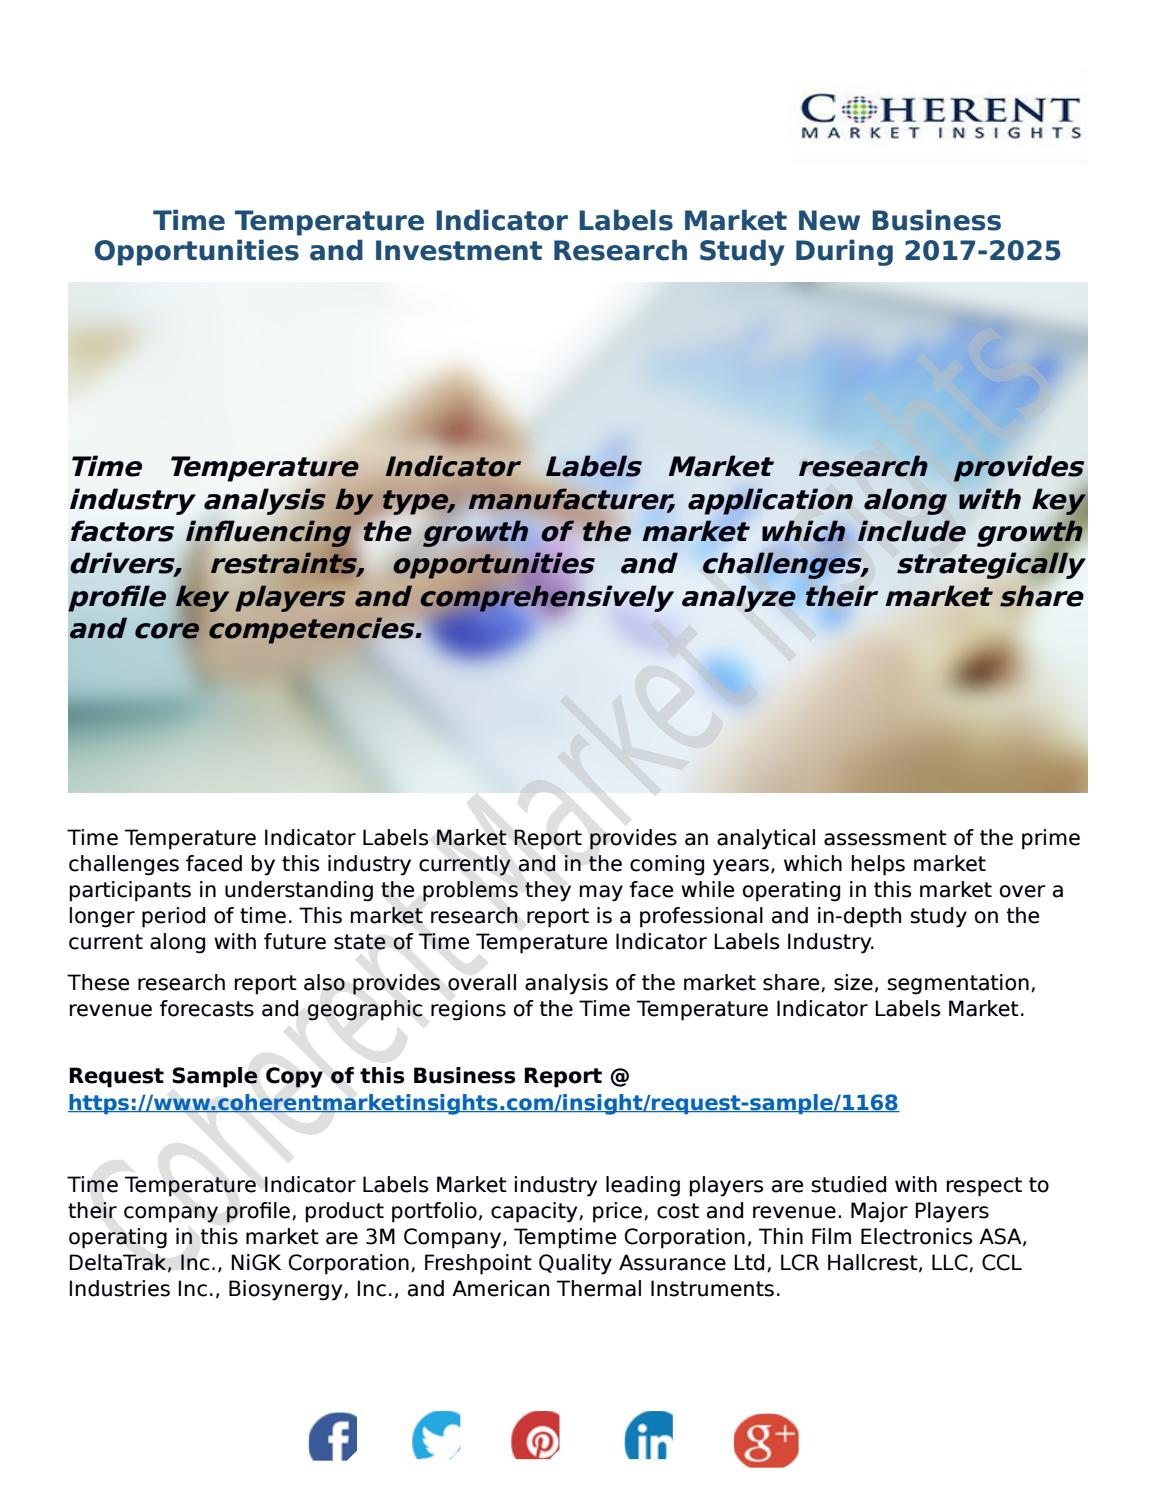 Time temperature indicator labels market new business